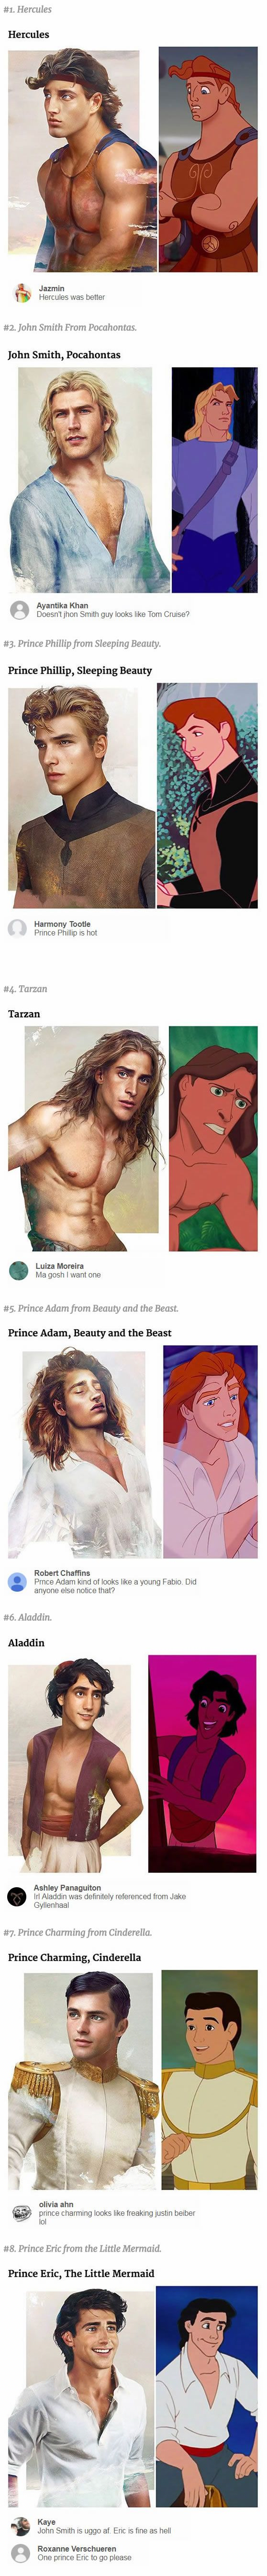 Omg it says 'One Prince Eric to go please' I CANT BREATHE